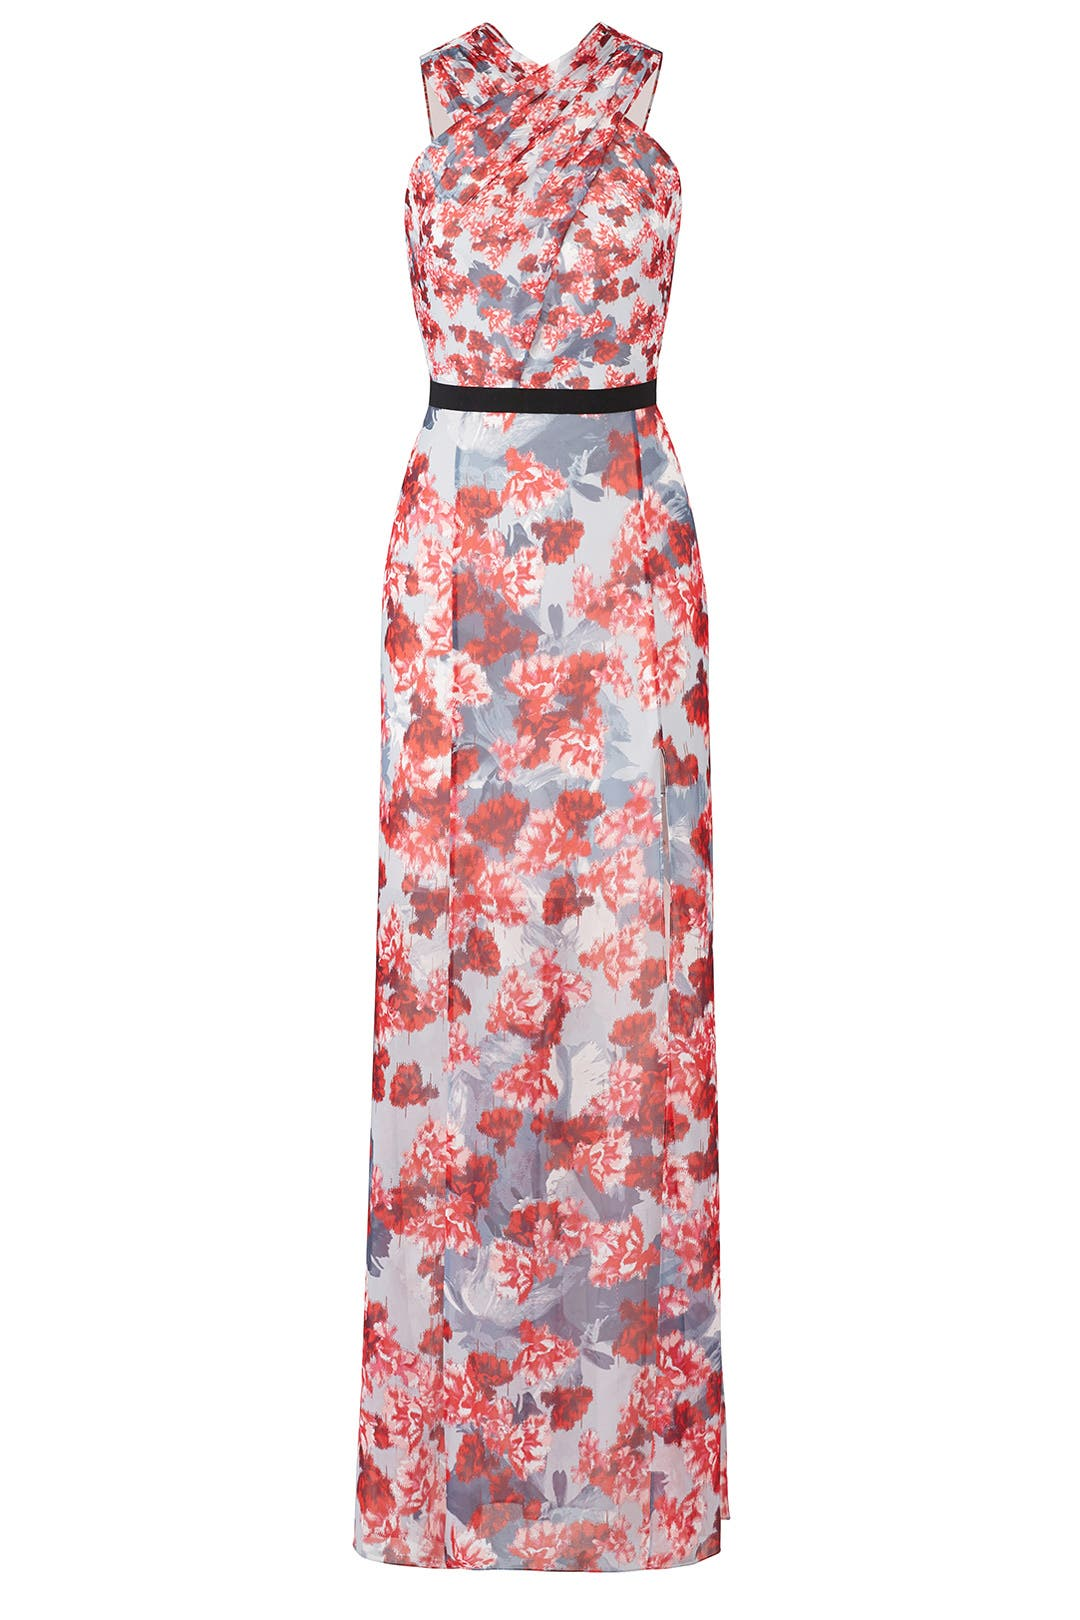 Red Floral Gown by Prabal Gurung for $85 - $105 | Rent the Runway